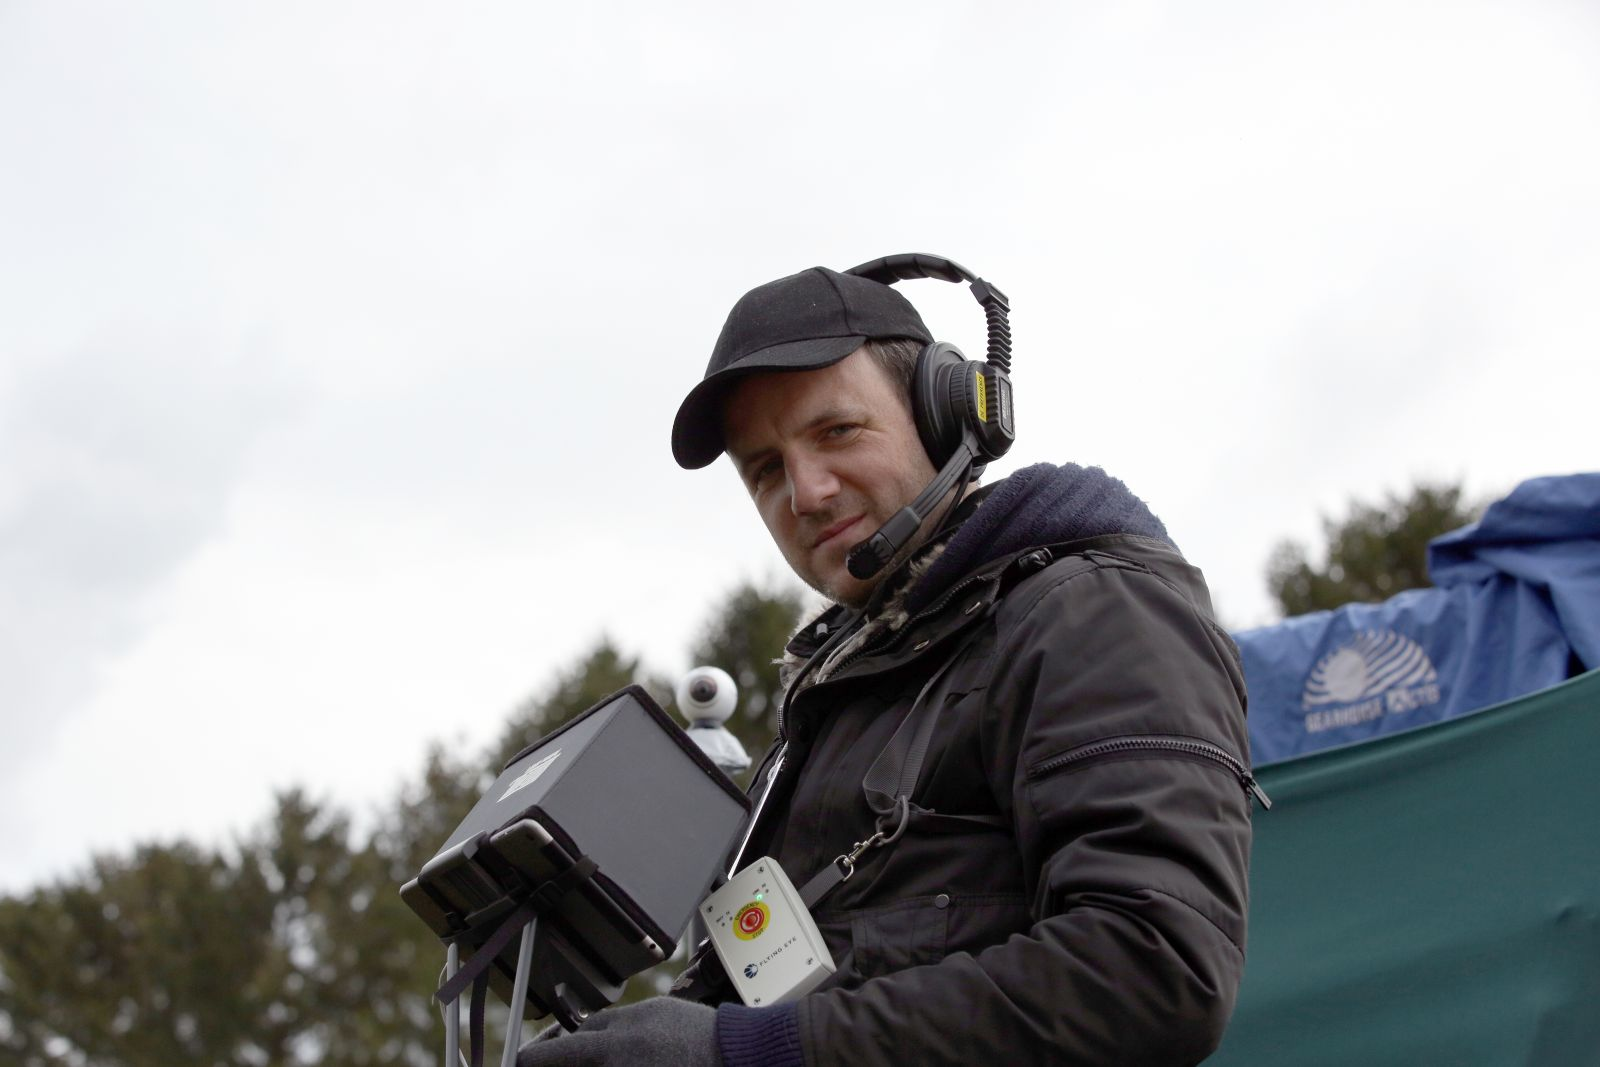 The Pilot ( LiveDrone), Thomas Jumel, with the emergency remote